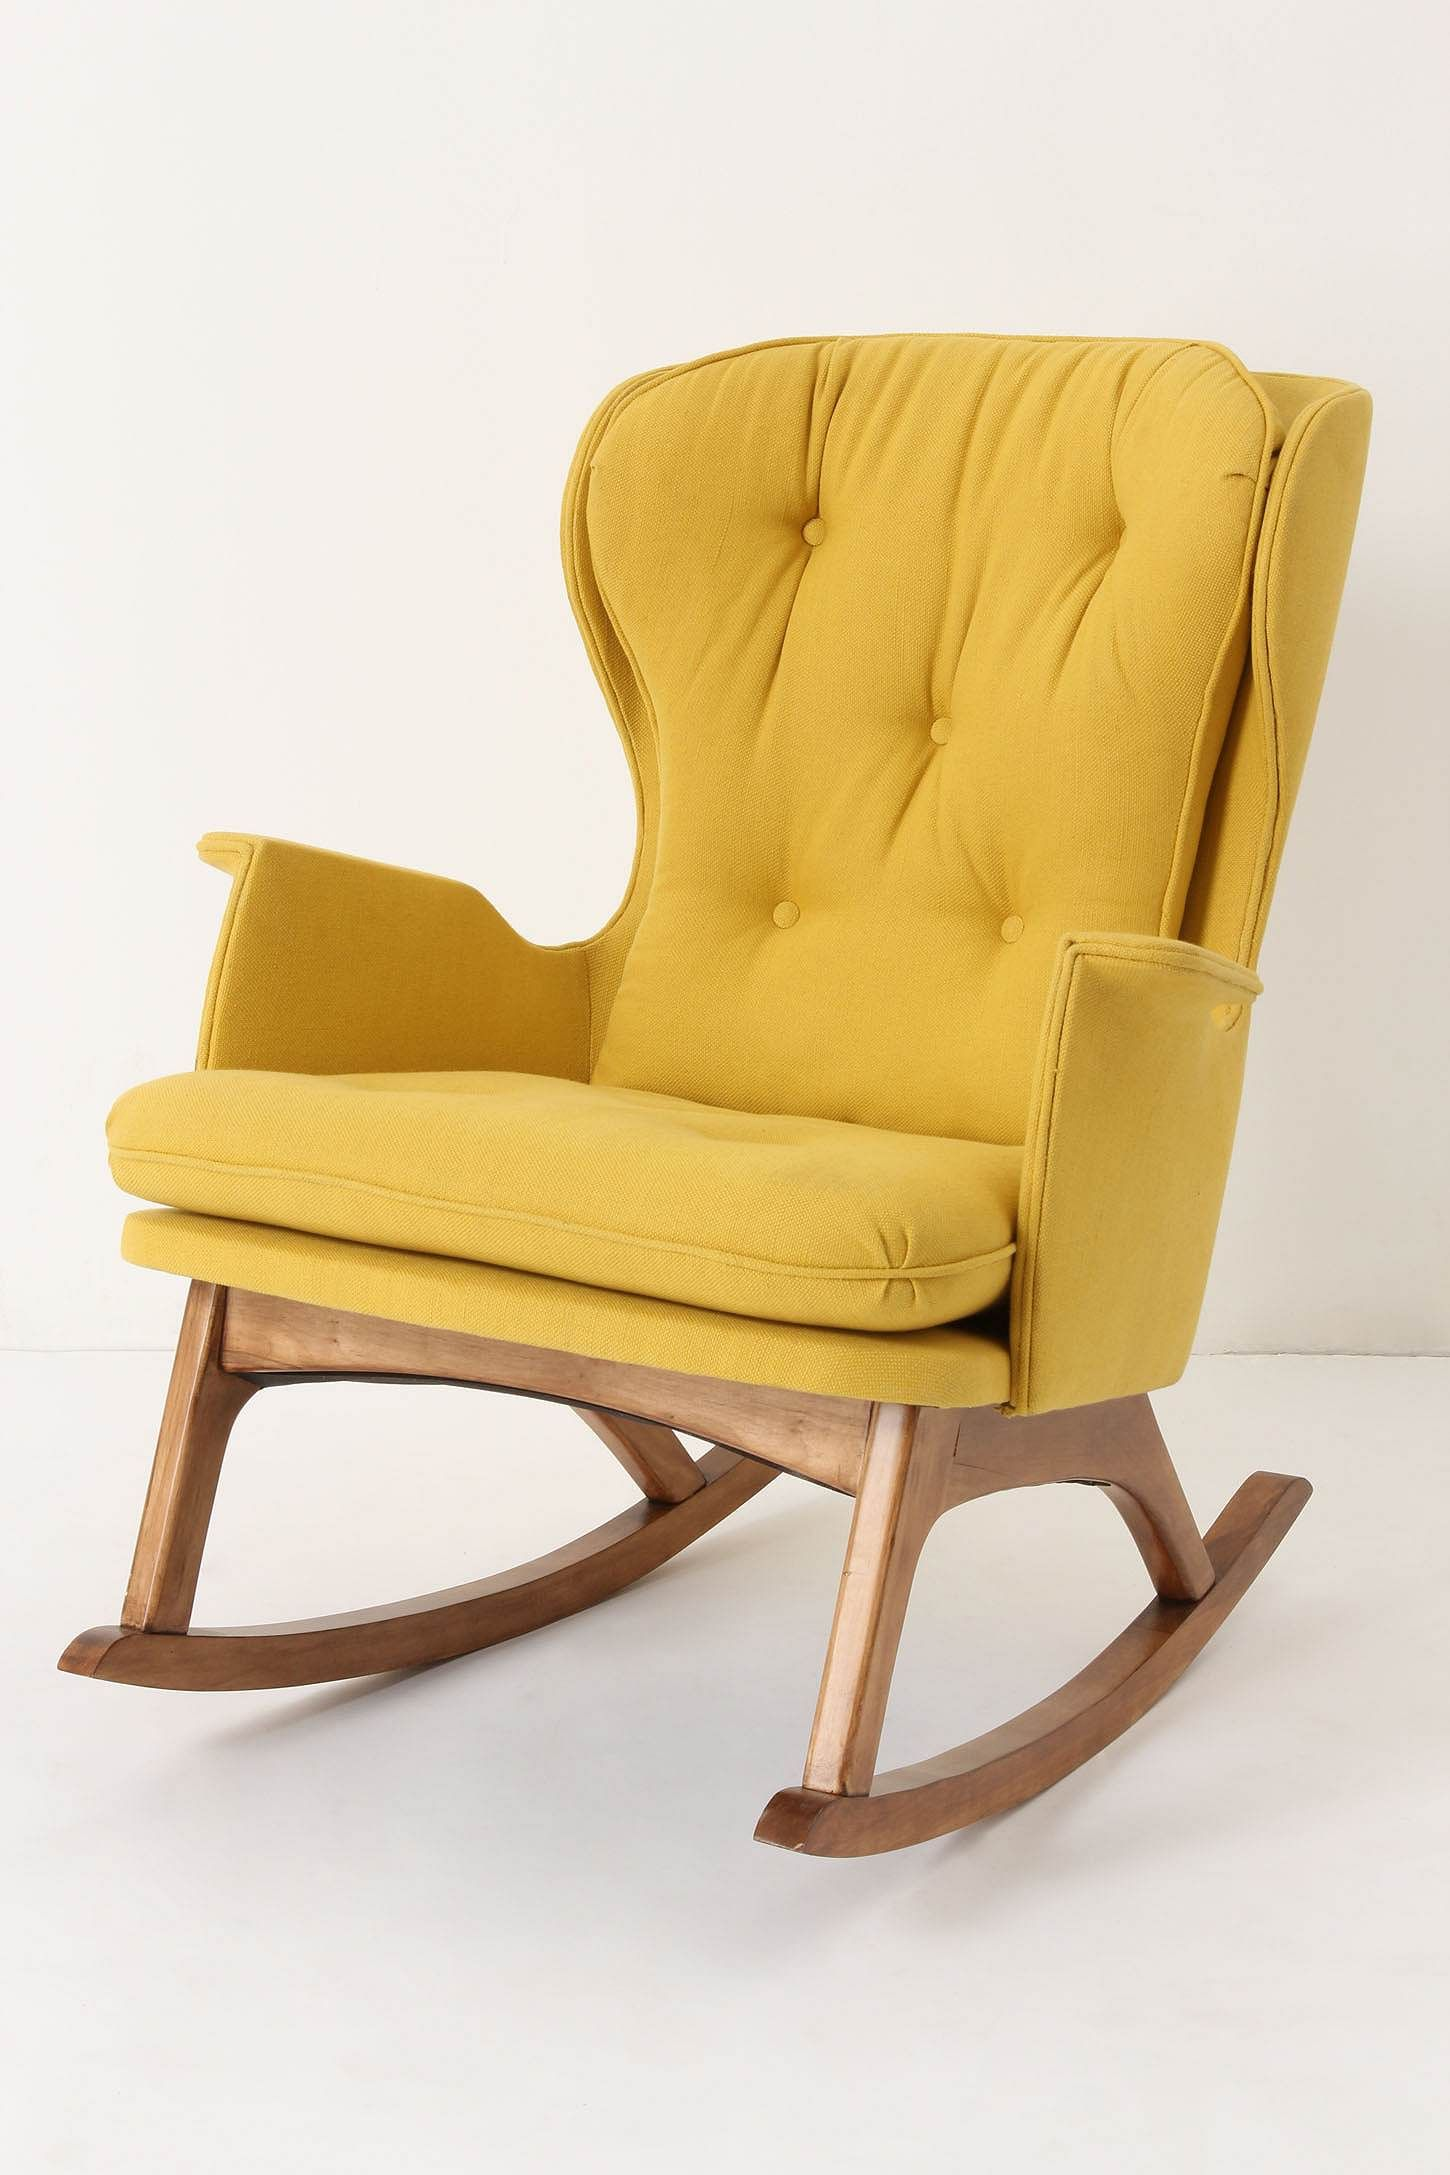 Une chaise bascule jaune assise pinterest chaises for Chaise a bascule